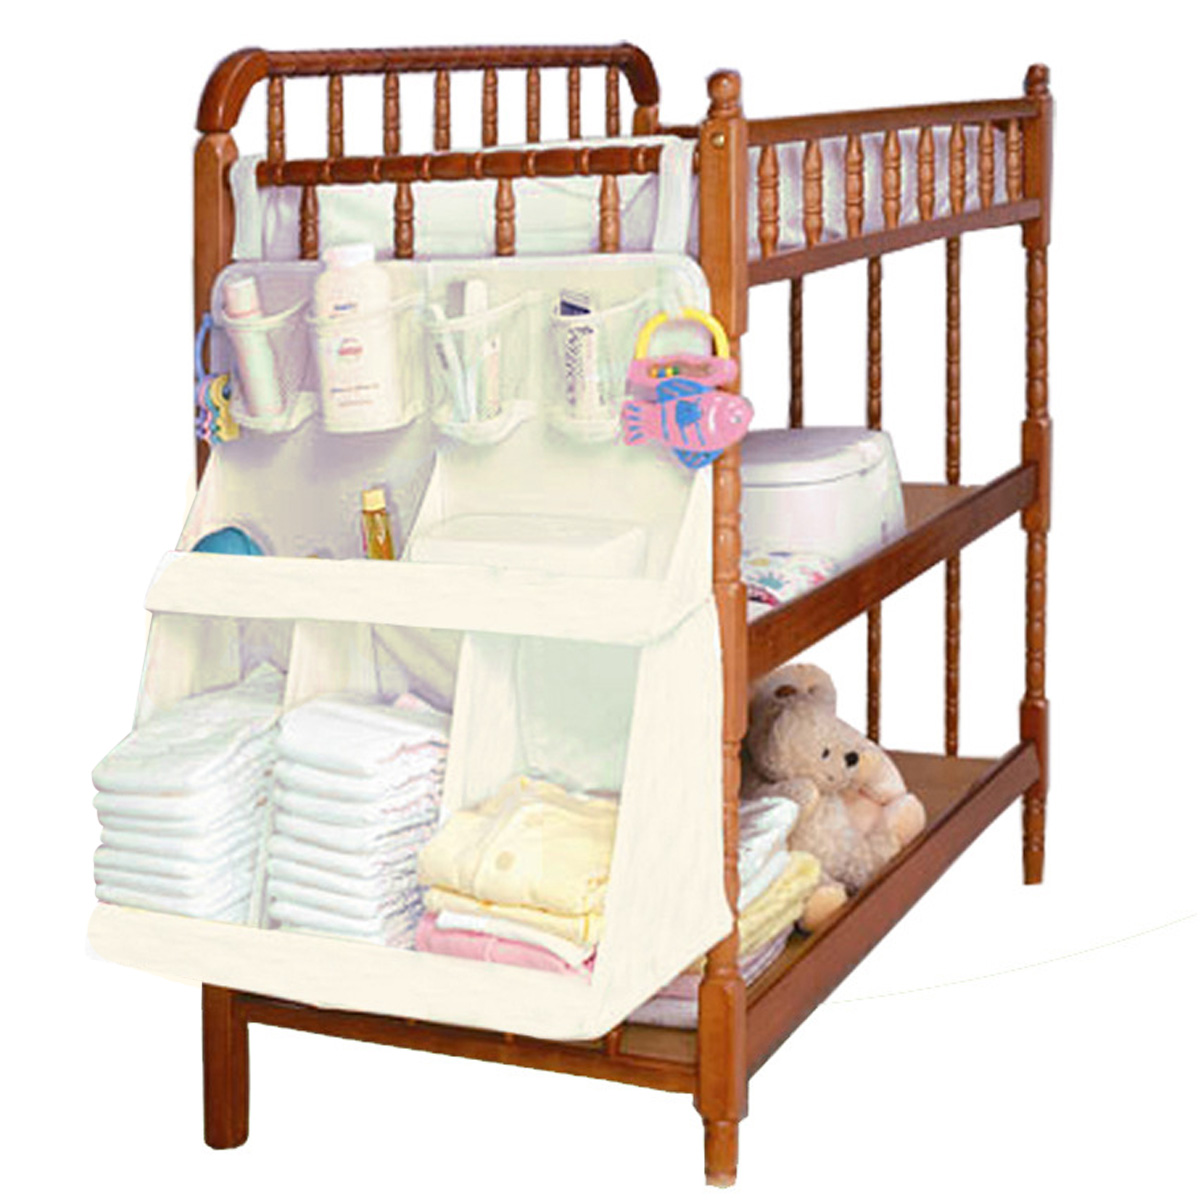 baby bed bedding set accessories waterproof diapers organizer baby crib bed hanging bag portable storage